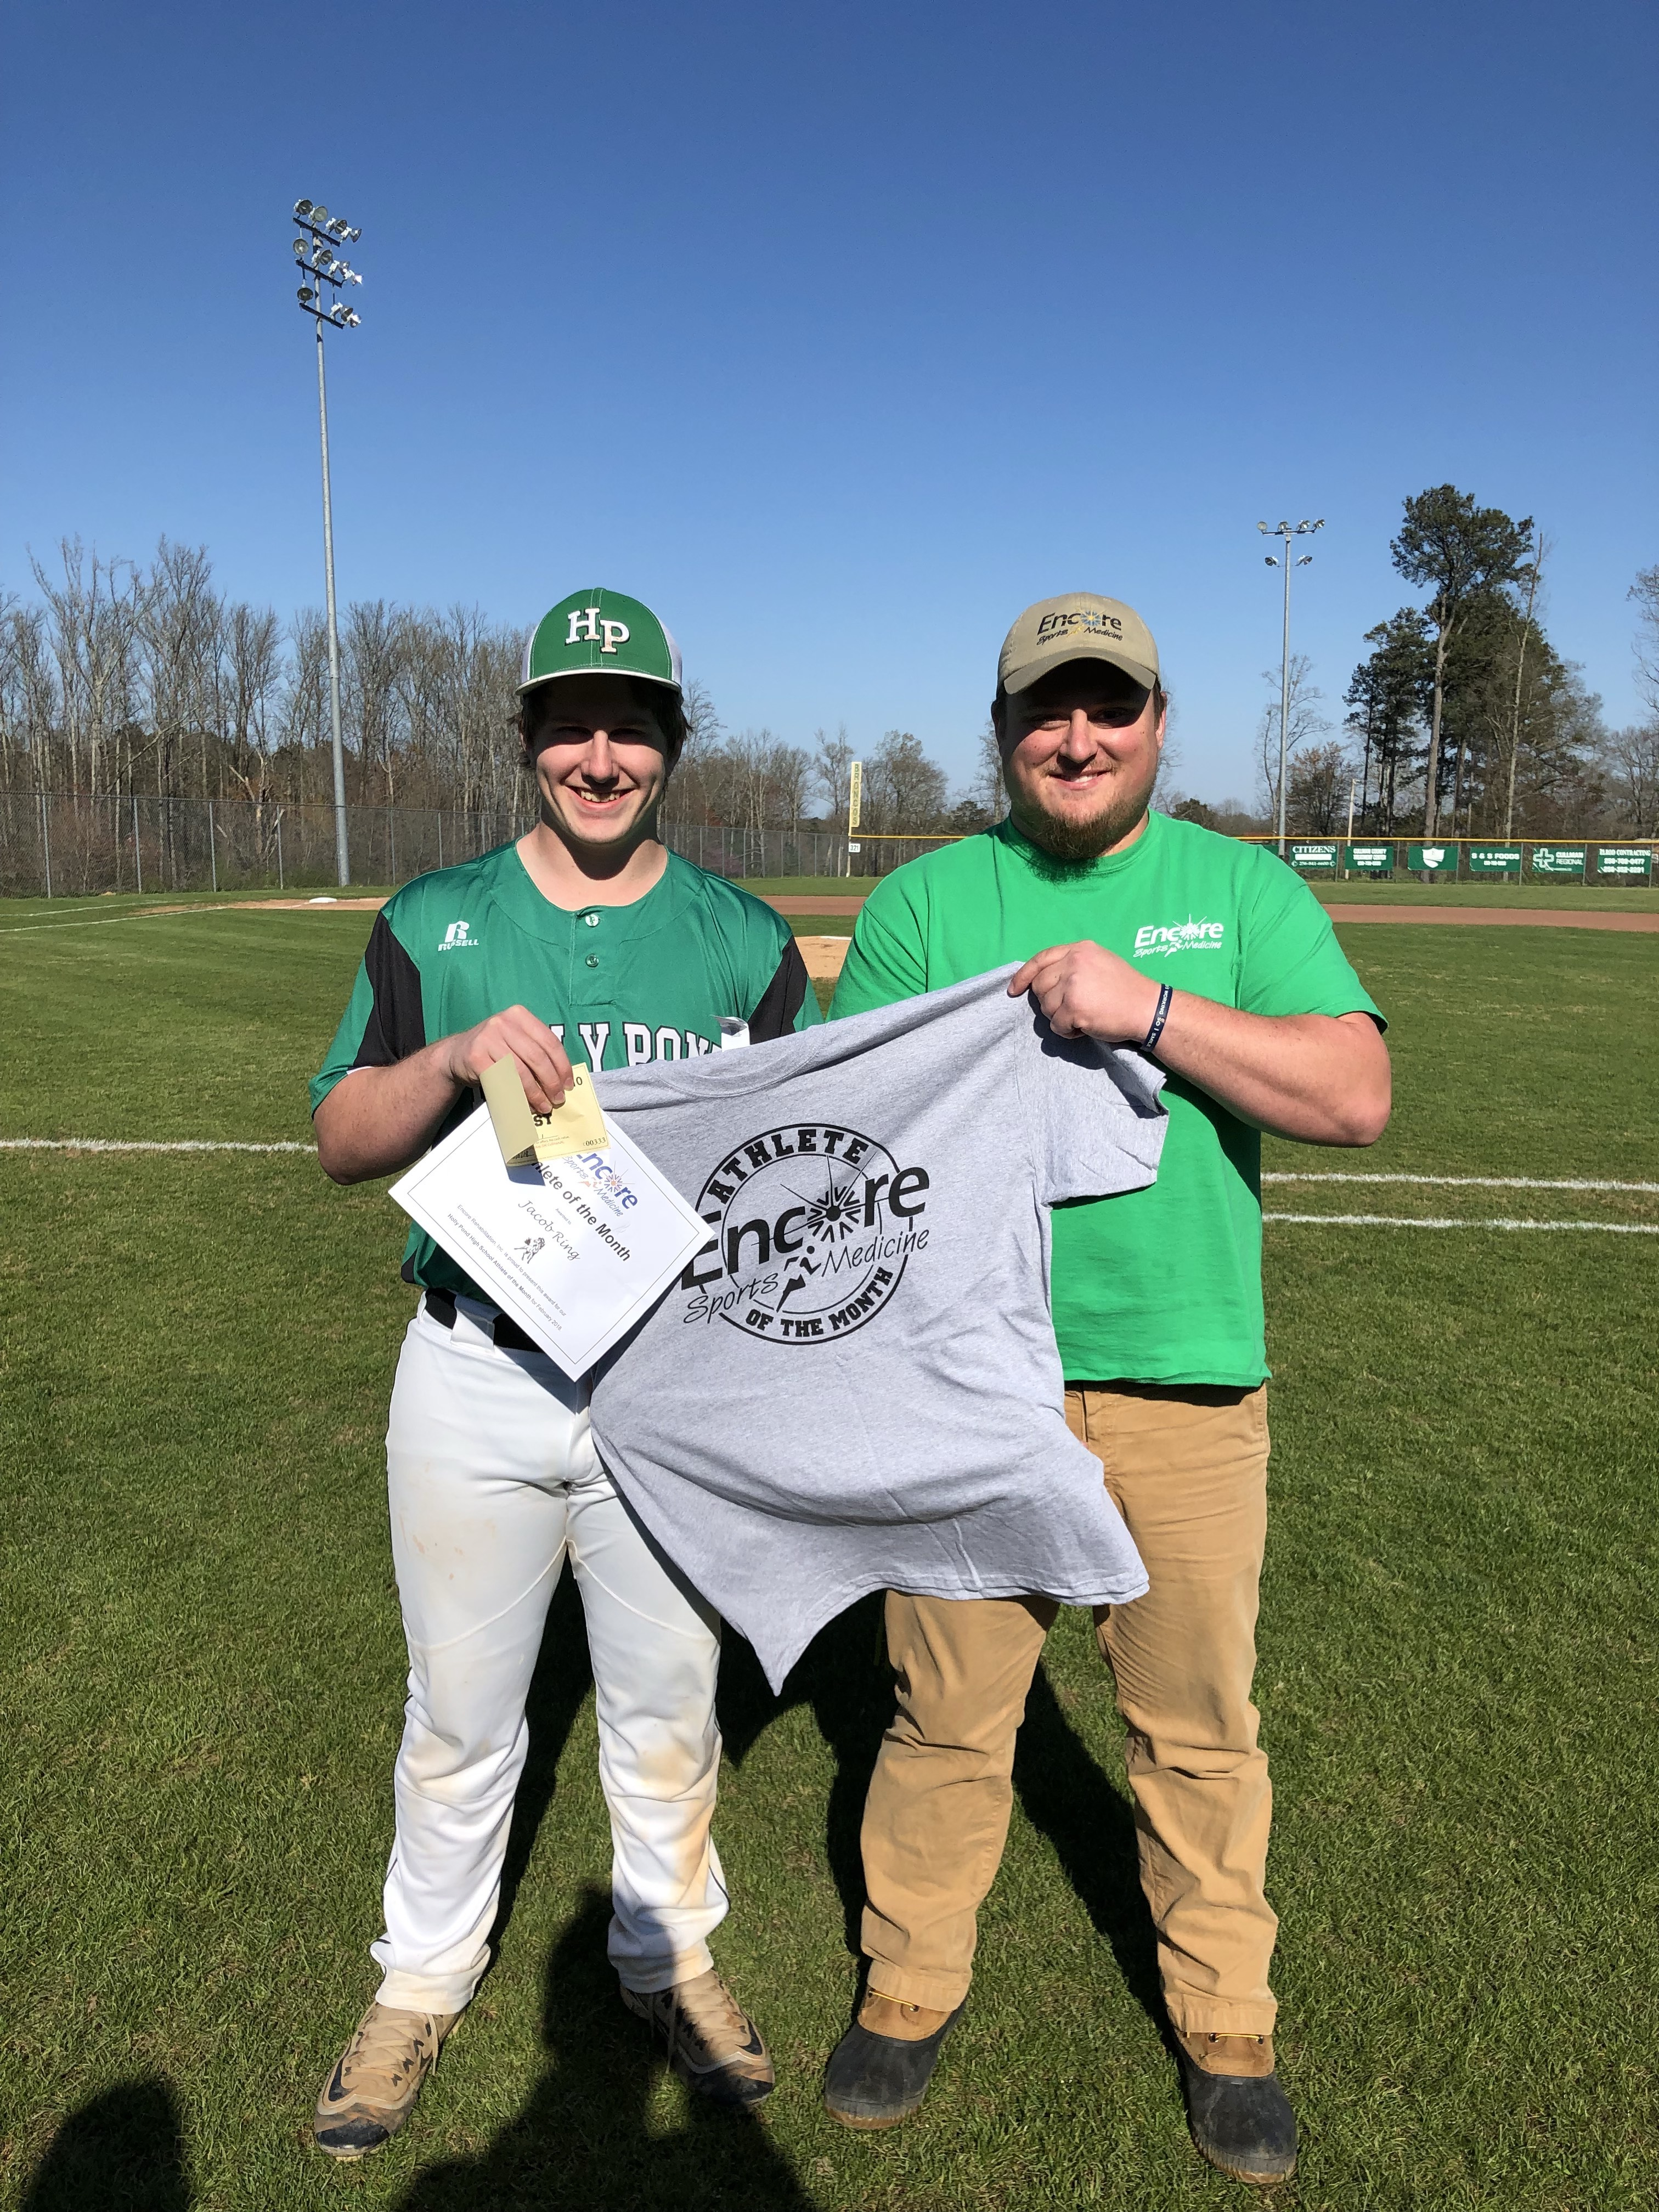 Male baseball player in uniform standing on baseball field holding a certificate and t-shirt which reads Encore Sports Medicine Athlete of the Month while male athletic trainer also helps hold shirt